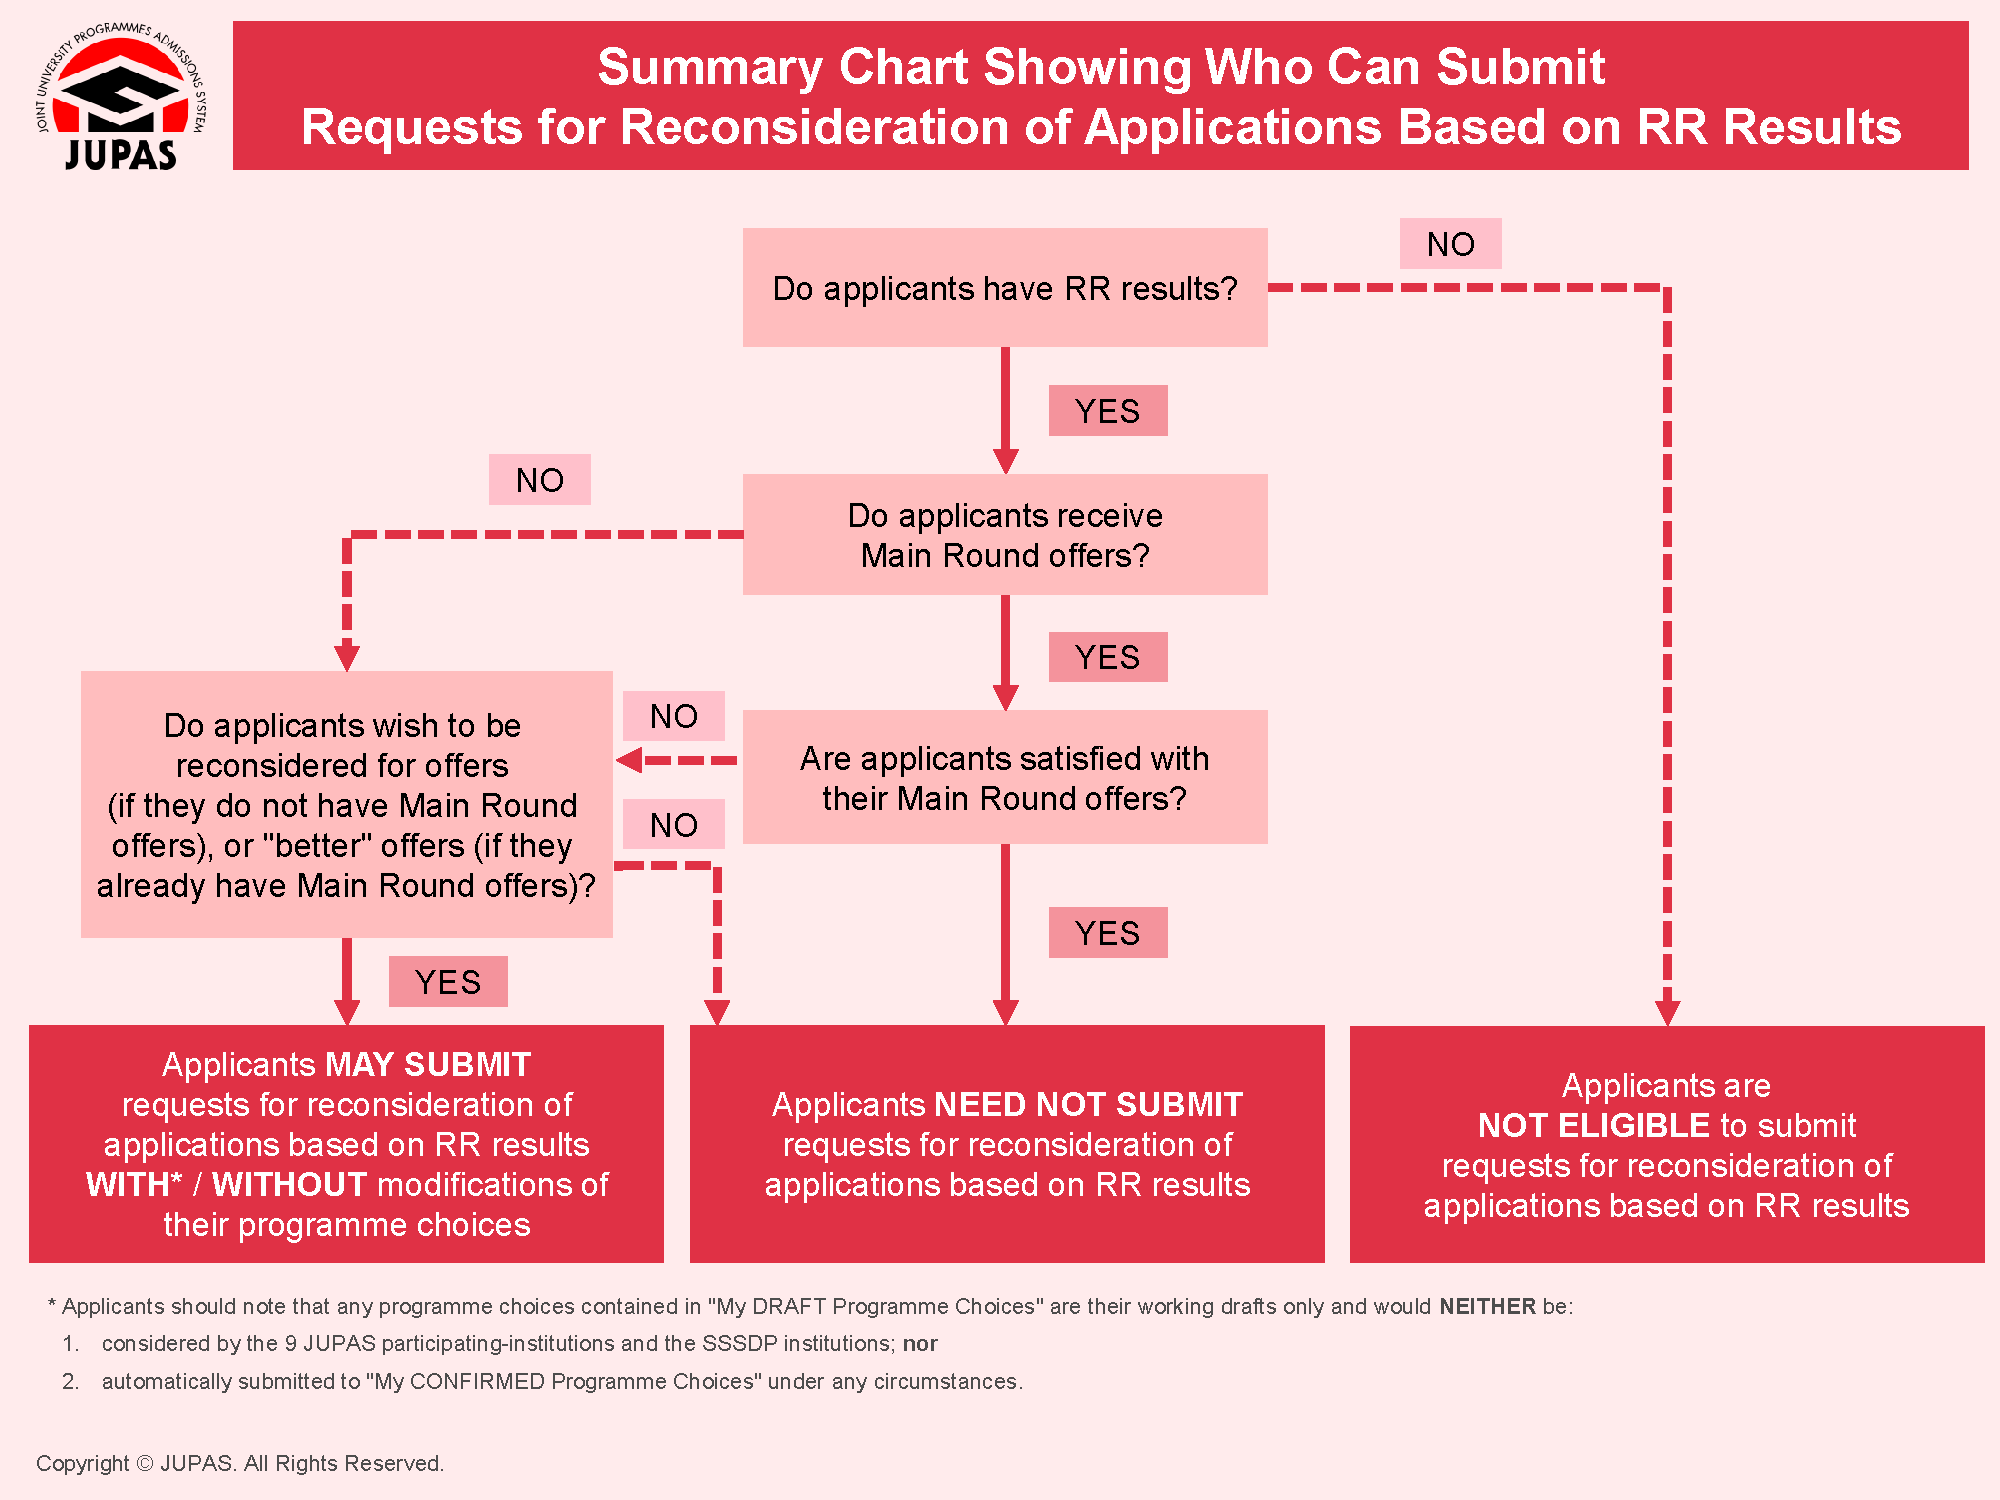 Summary Chart Showing Who Can Submit Requests for Reconsideration of Applications Based on RR Results